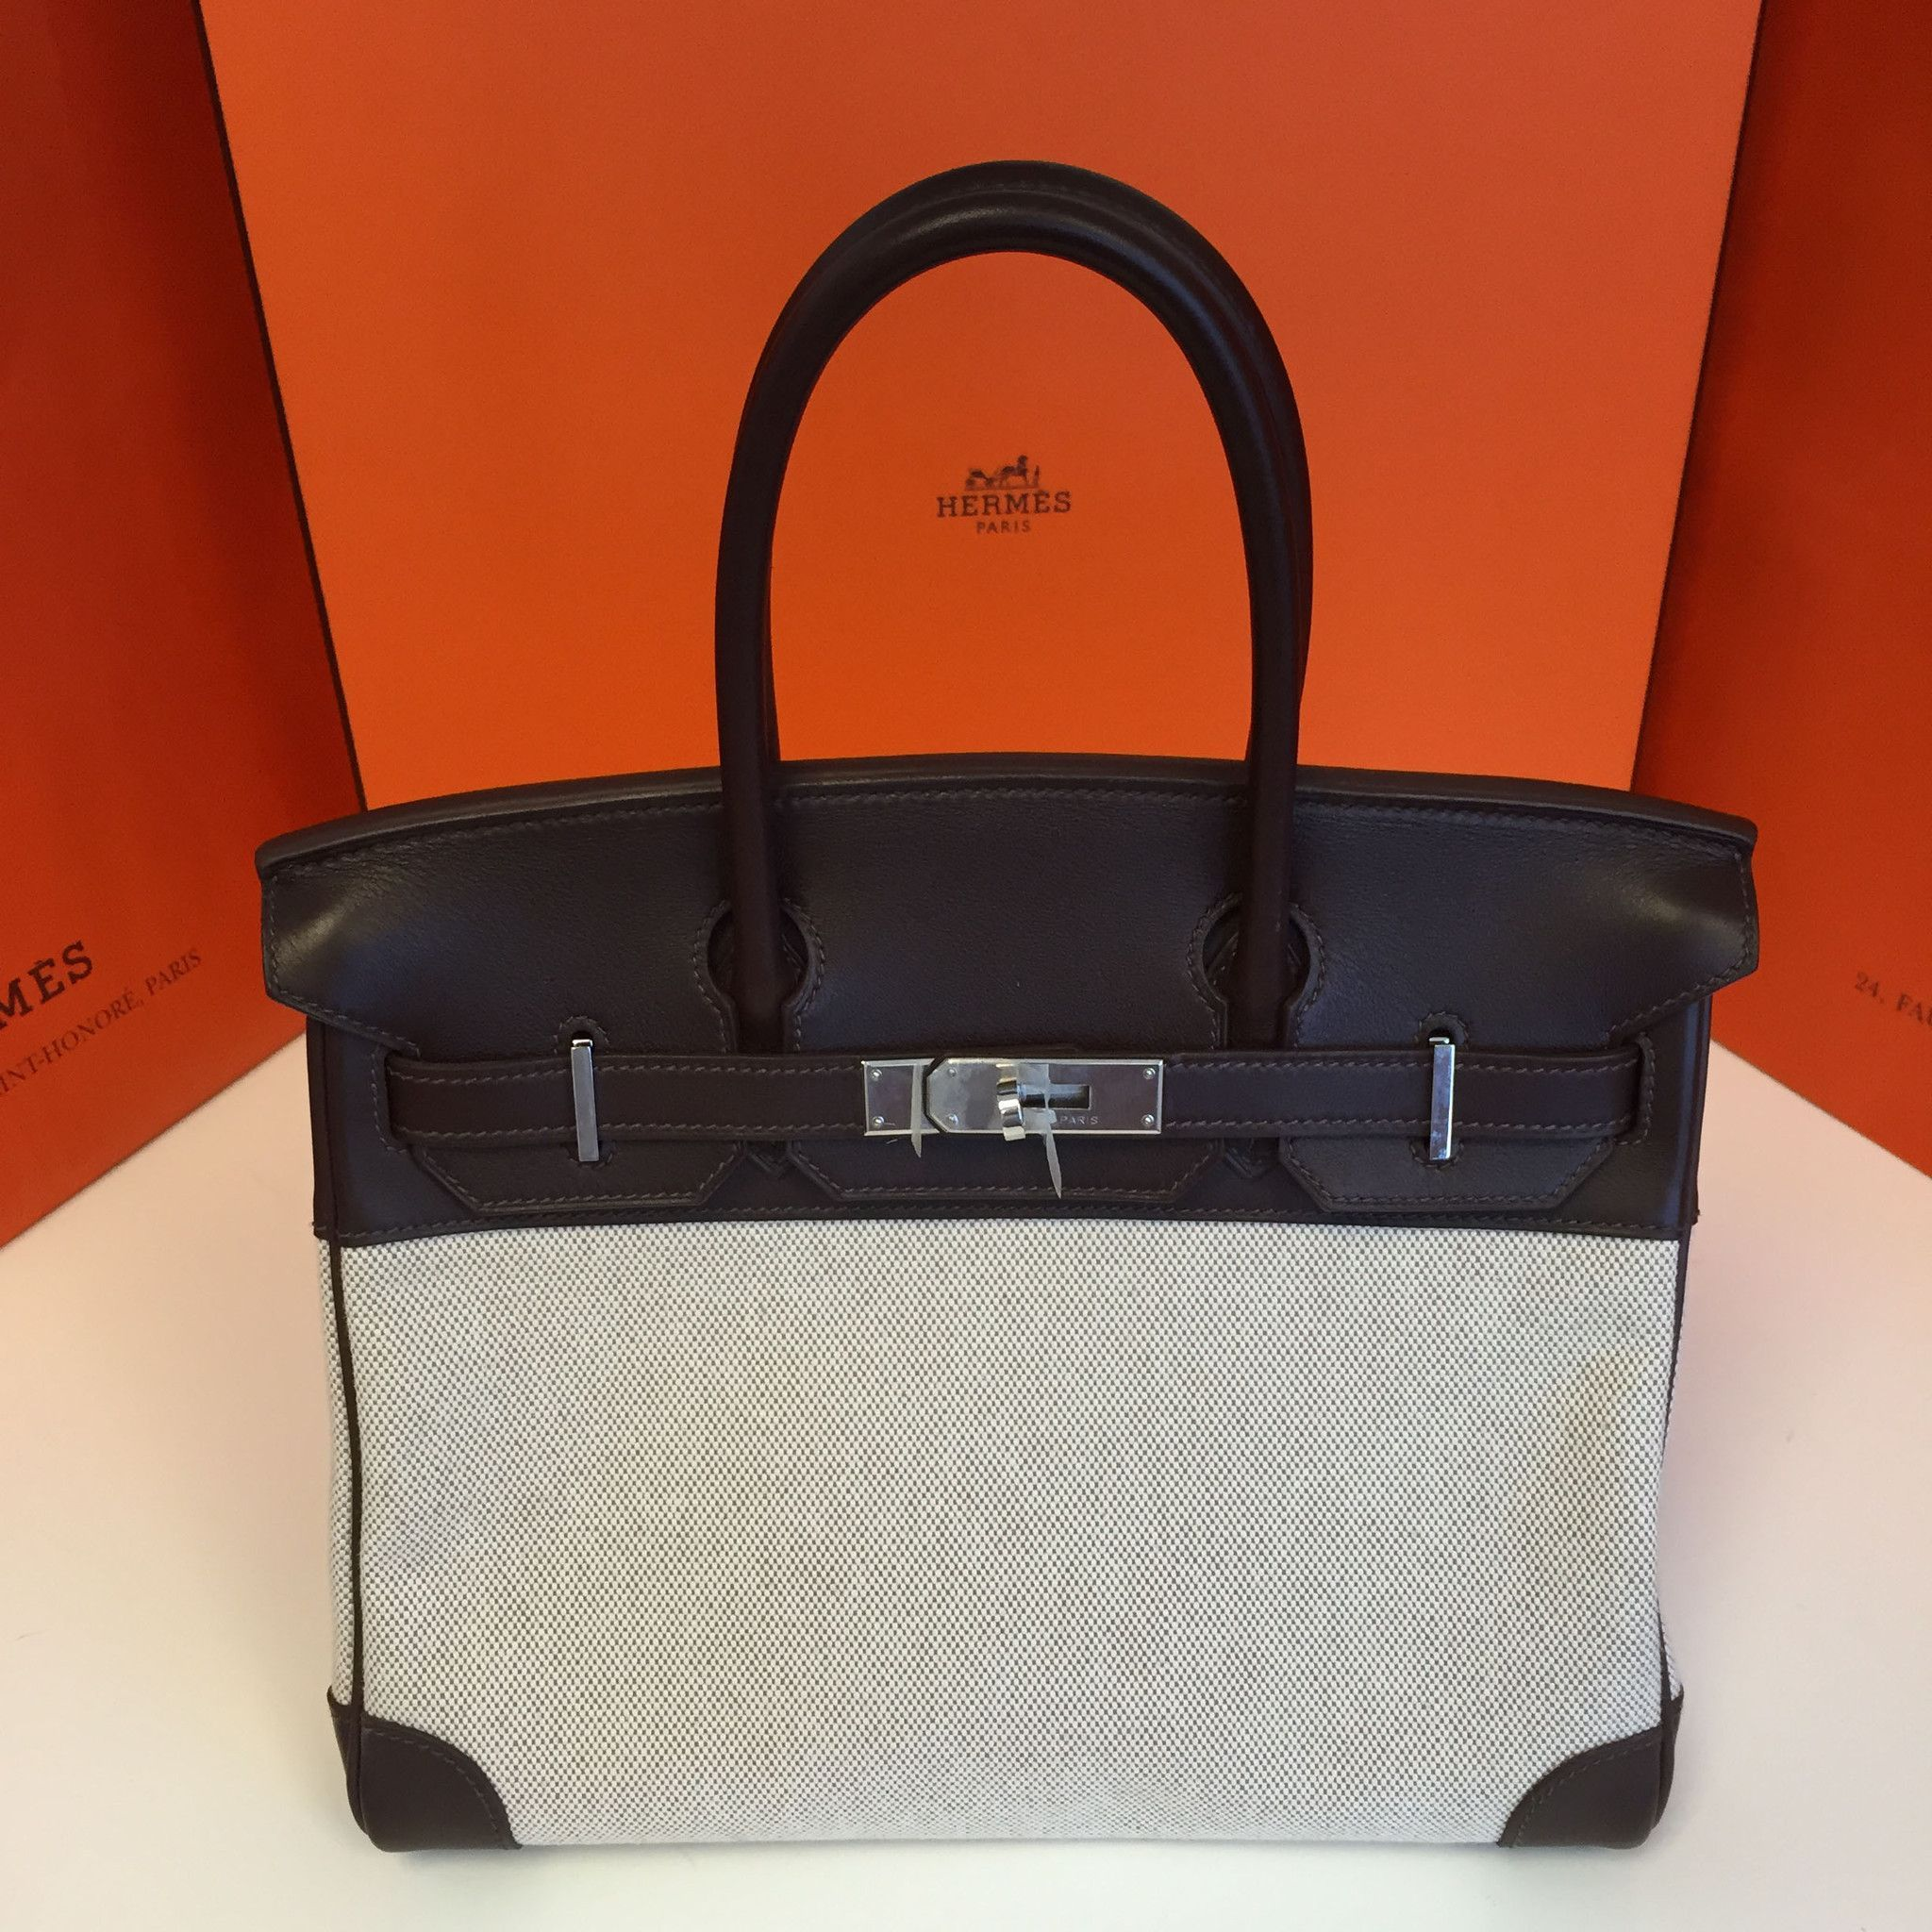 85e76ff68847 ... switzerland exquisite authentic pre owned hermès kelly bag. exterior  eggplant leather with fabric. please